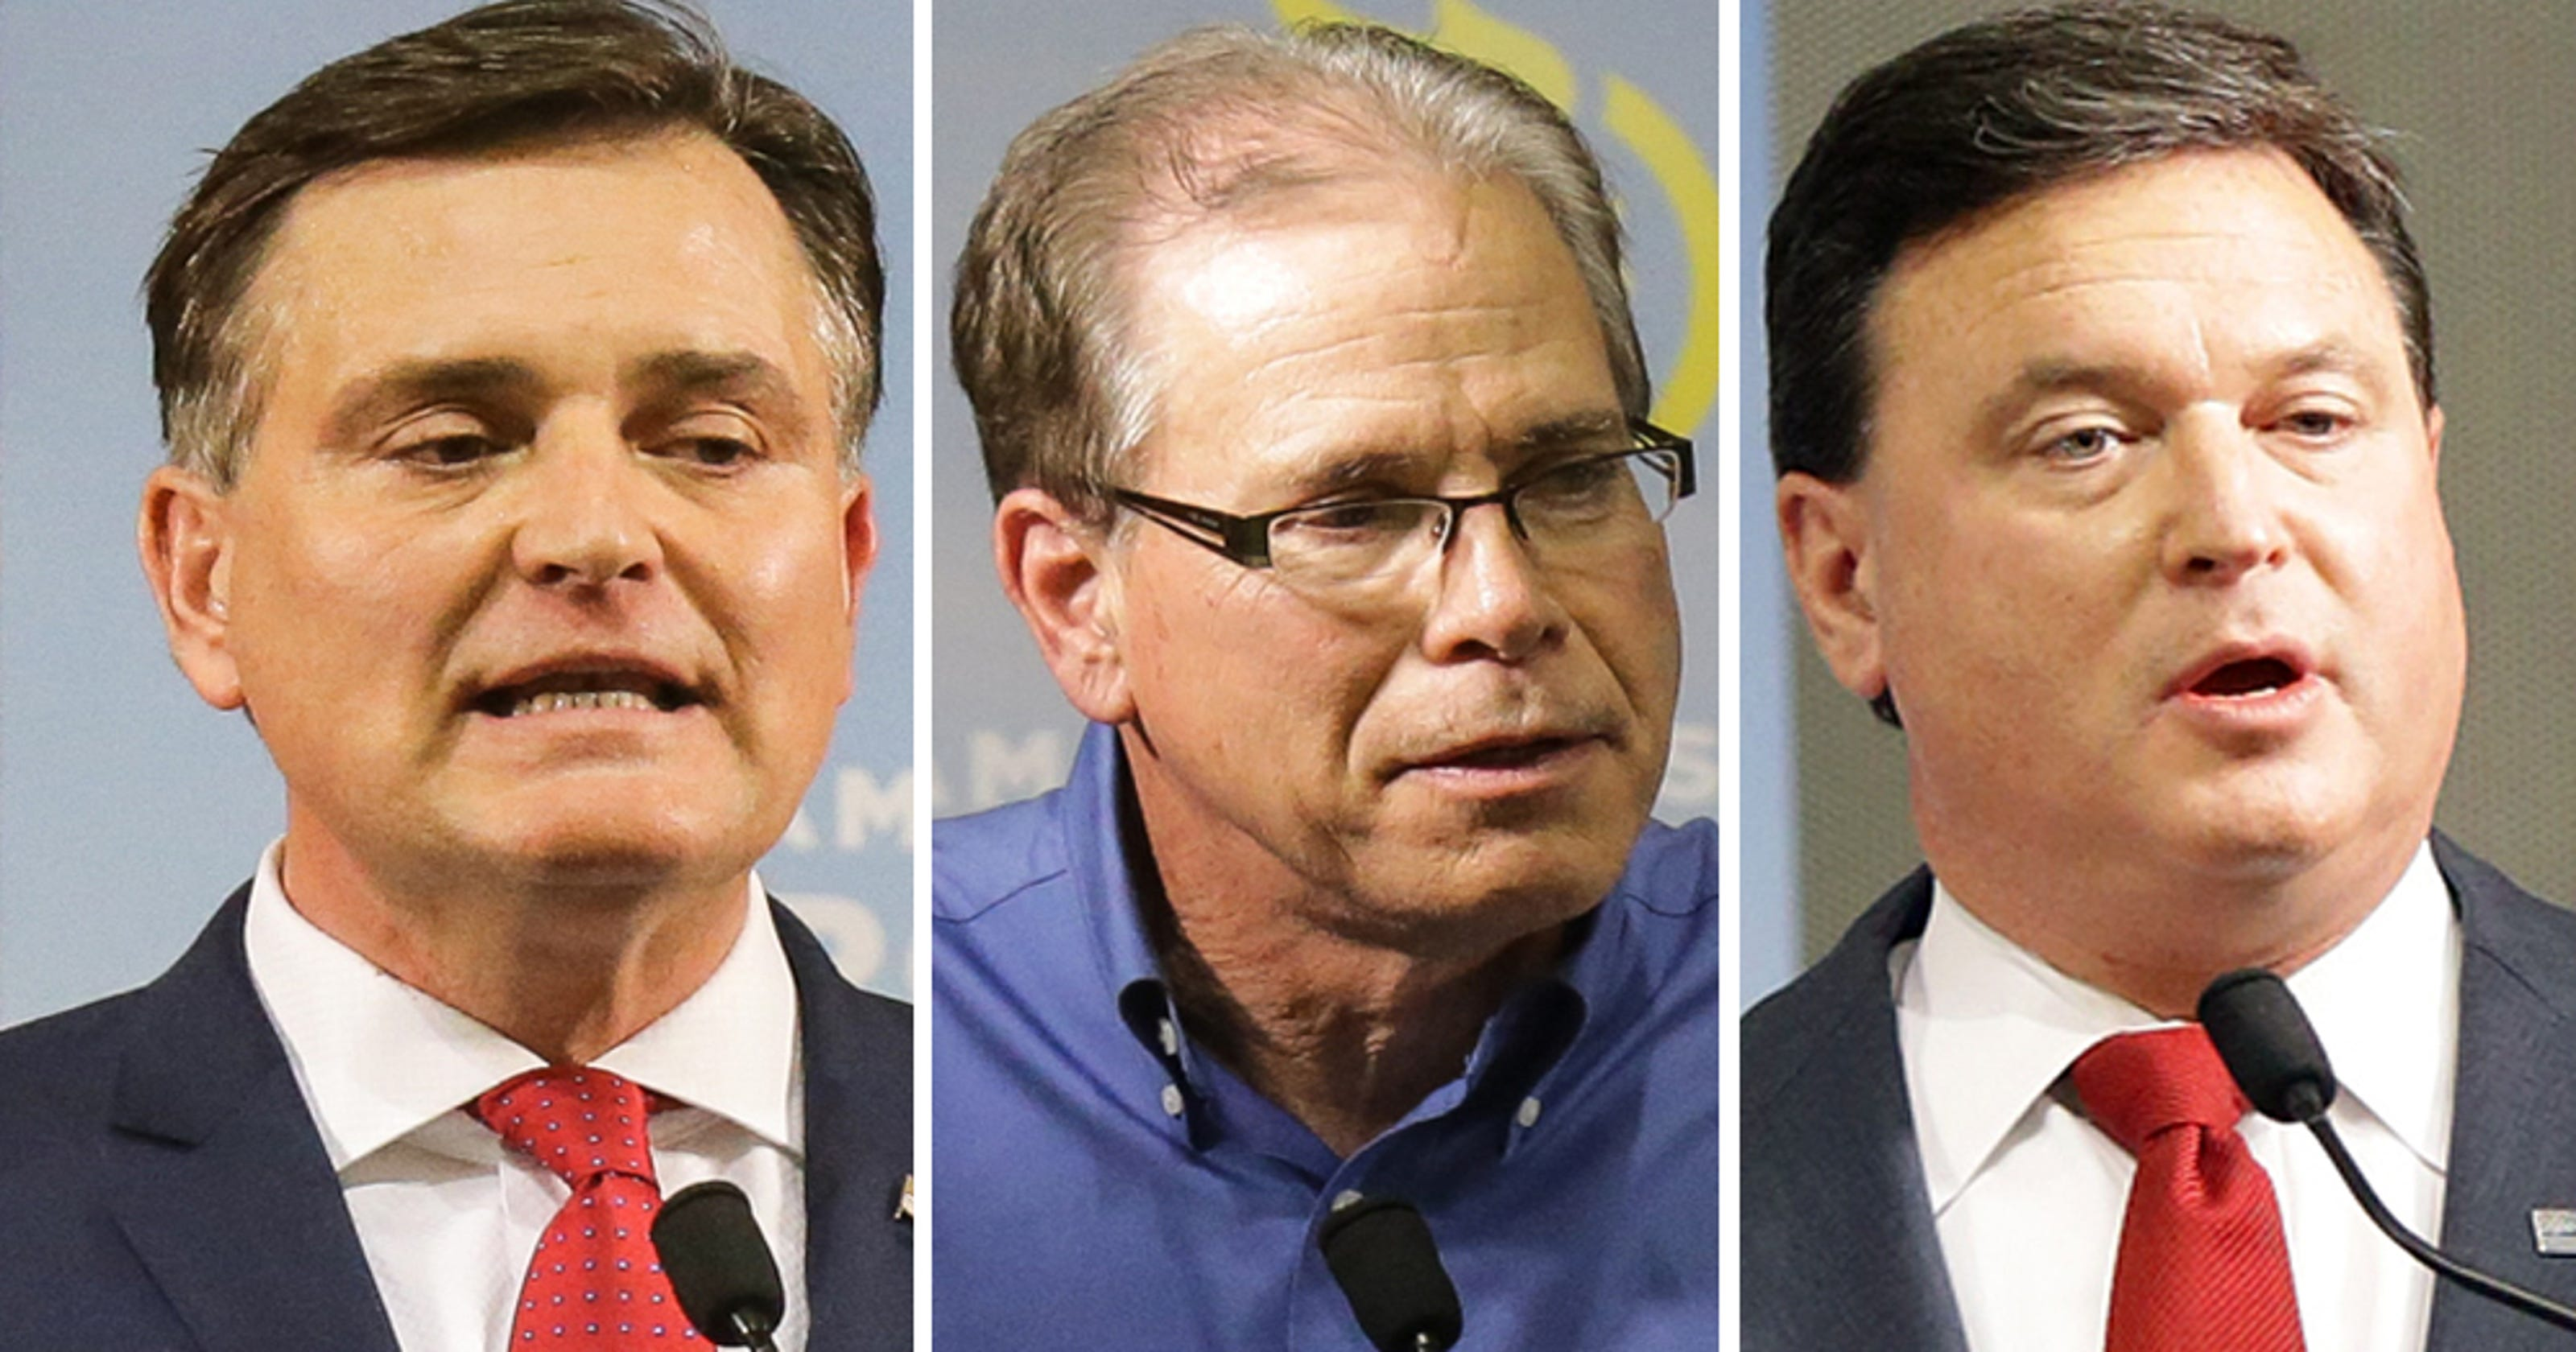 Indiana Senate Race After Nasty Pricey Primary Its Decision Time